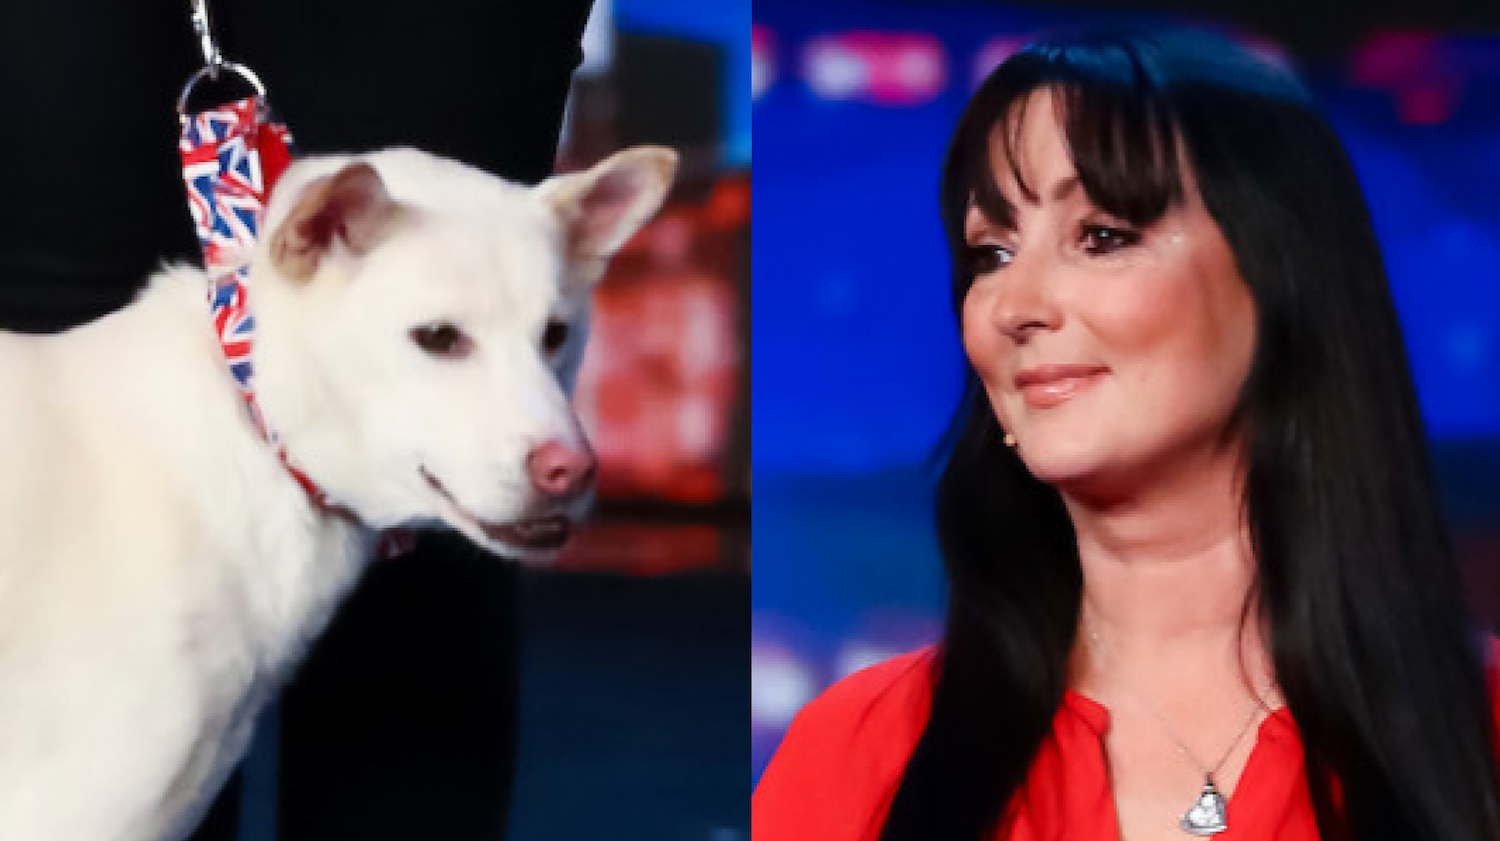 BGT rescue dog Miracle and hero Amanda Leask's incredible heartbreaking story revealed in full